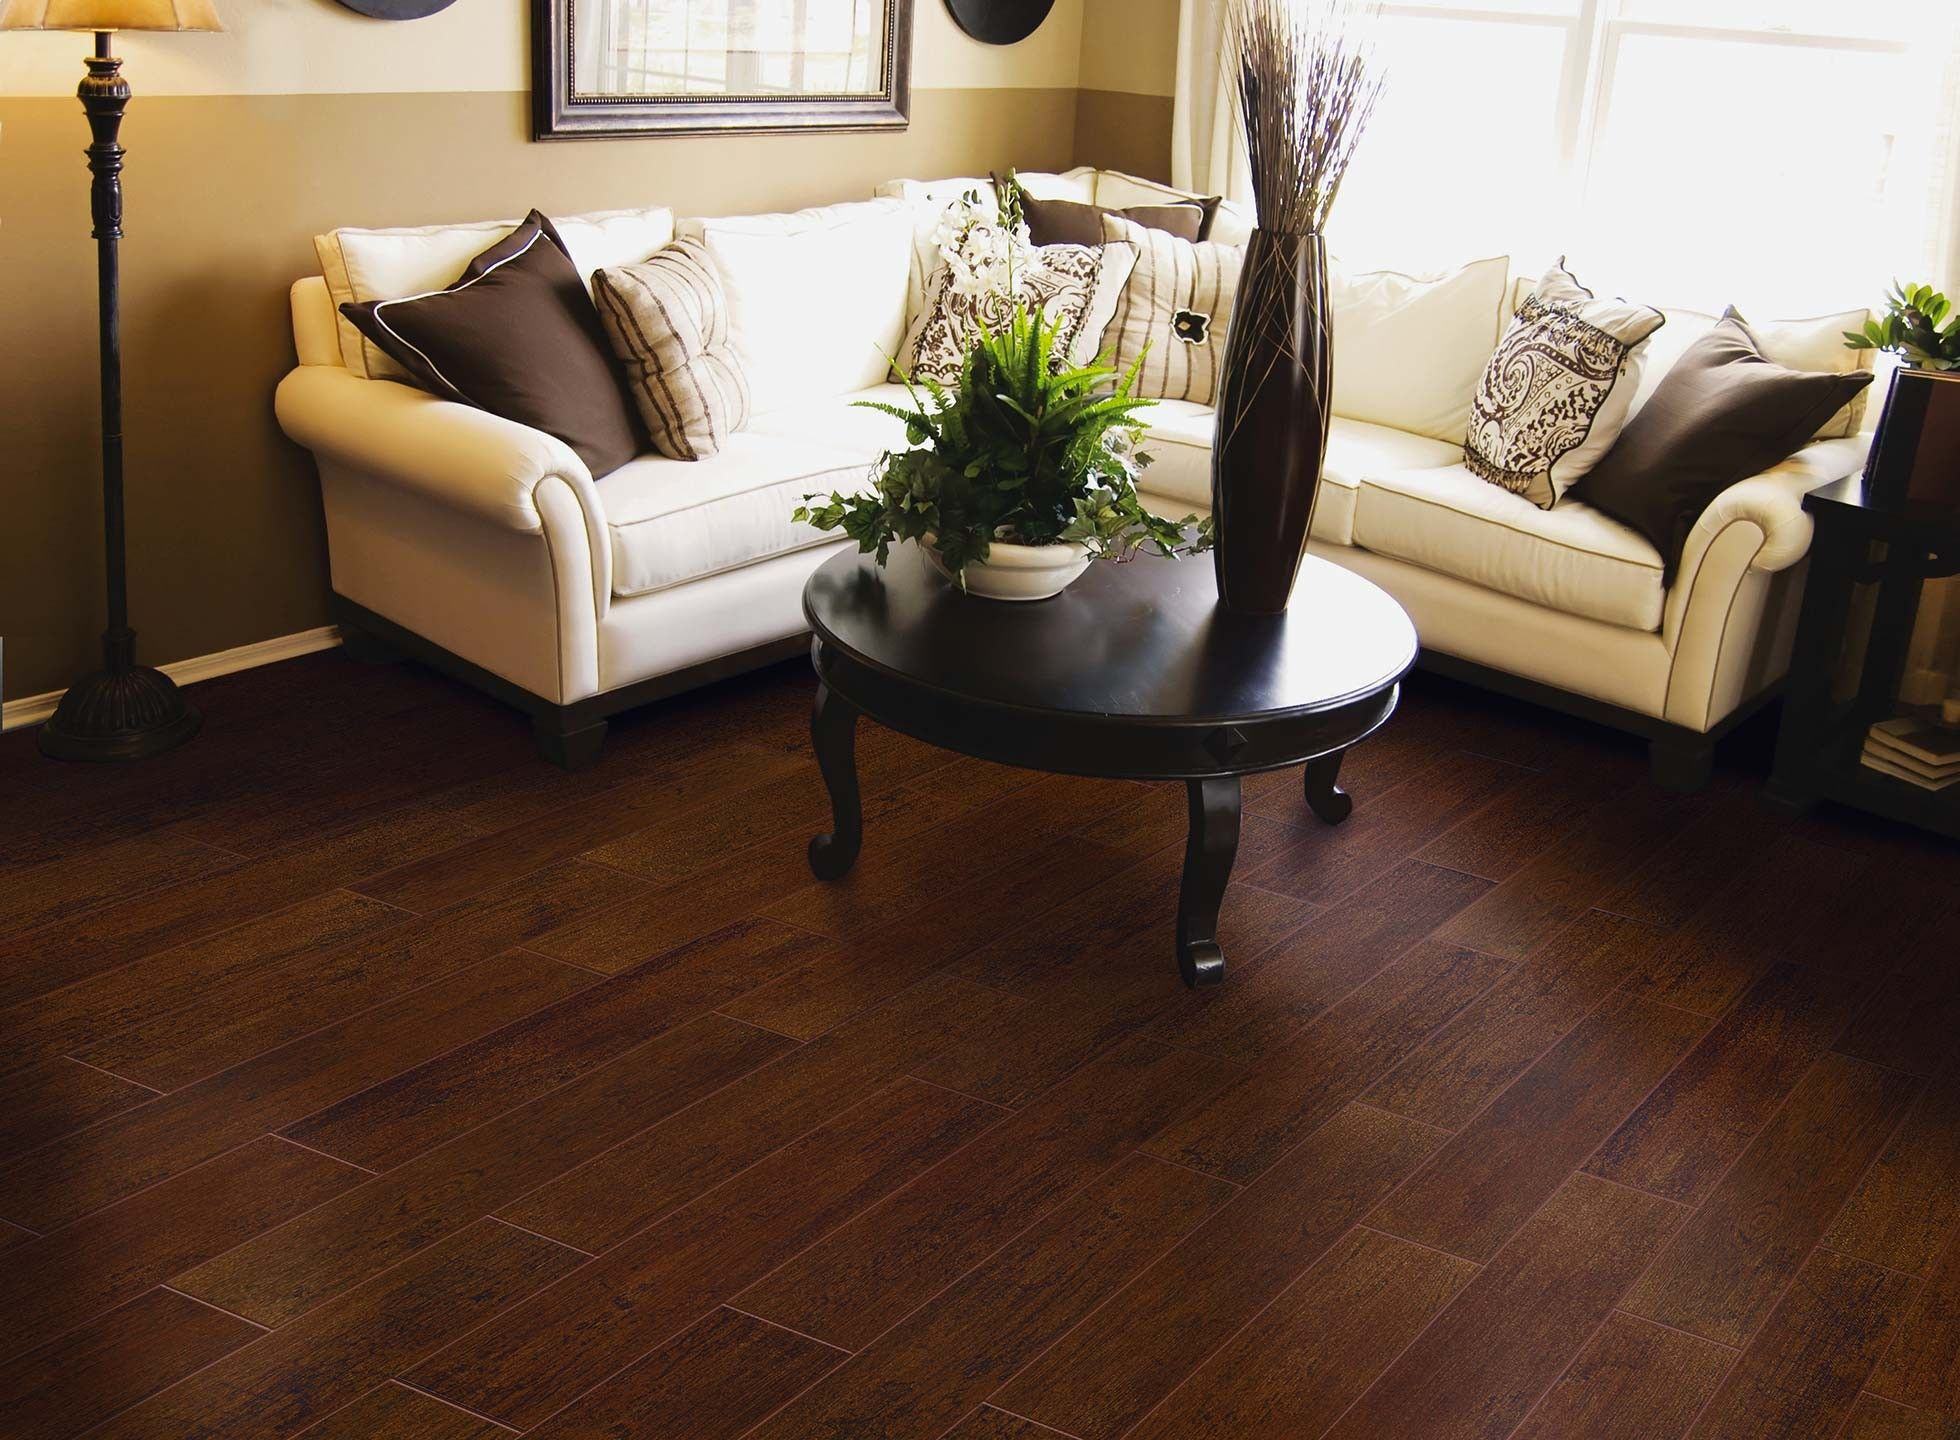 Dark Walnut Porcelain Wood Tile With Espresso And White Furniture